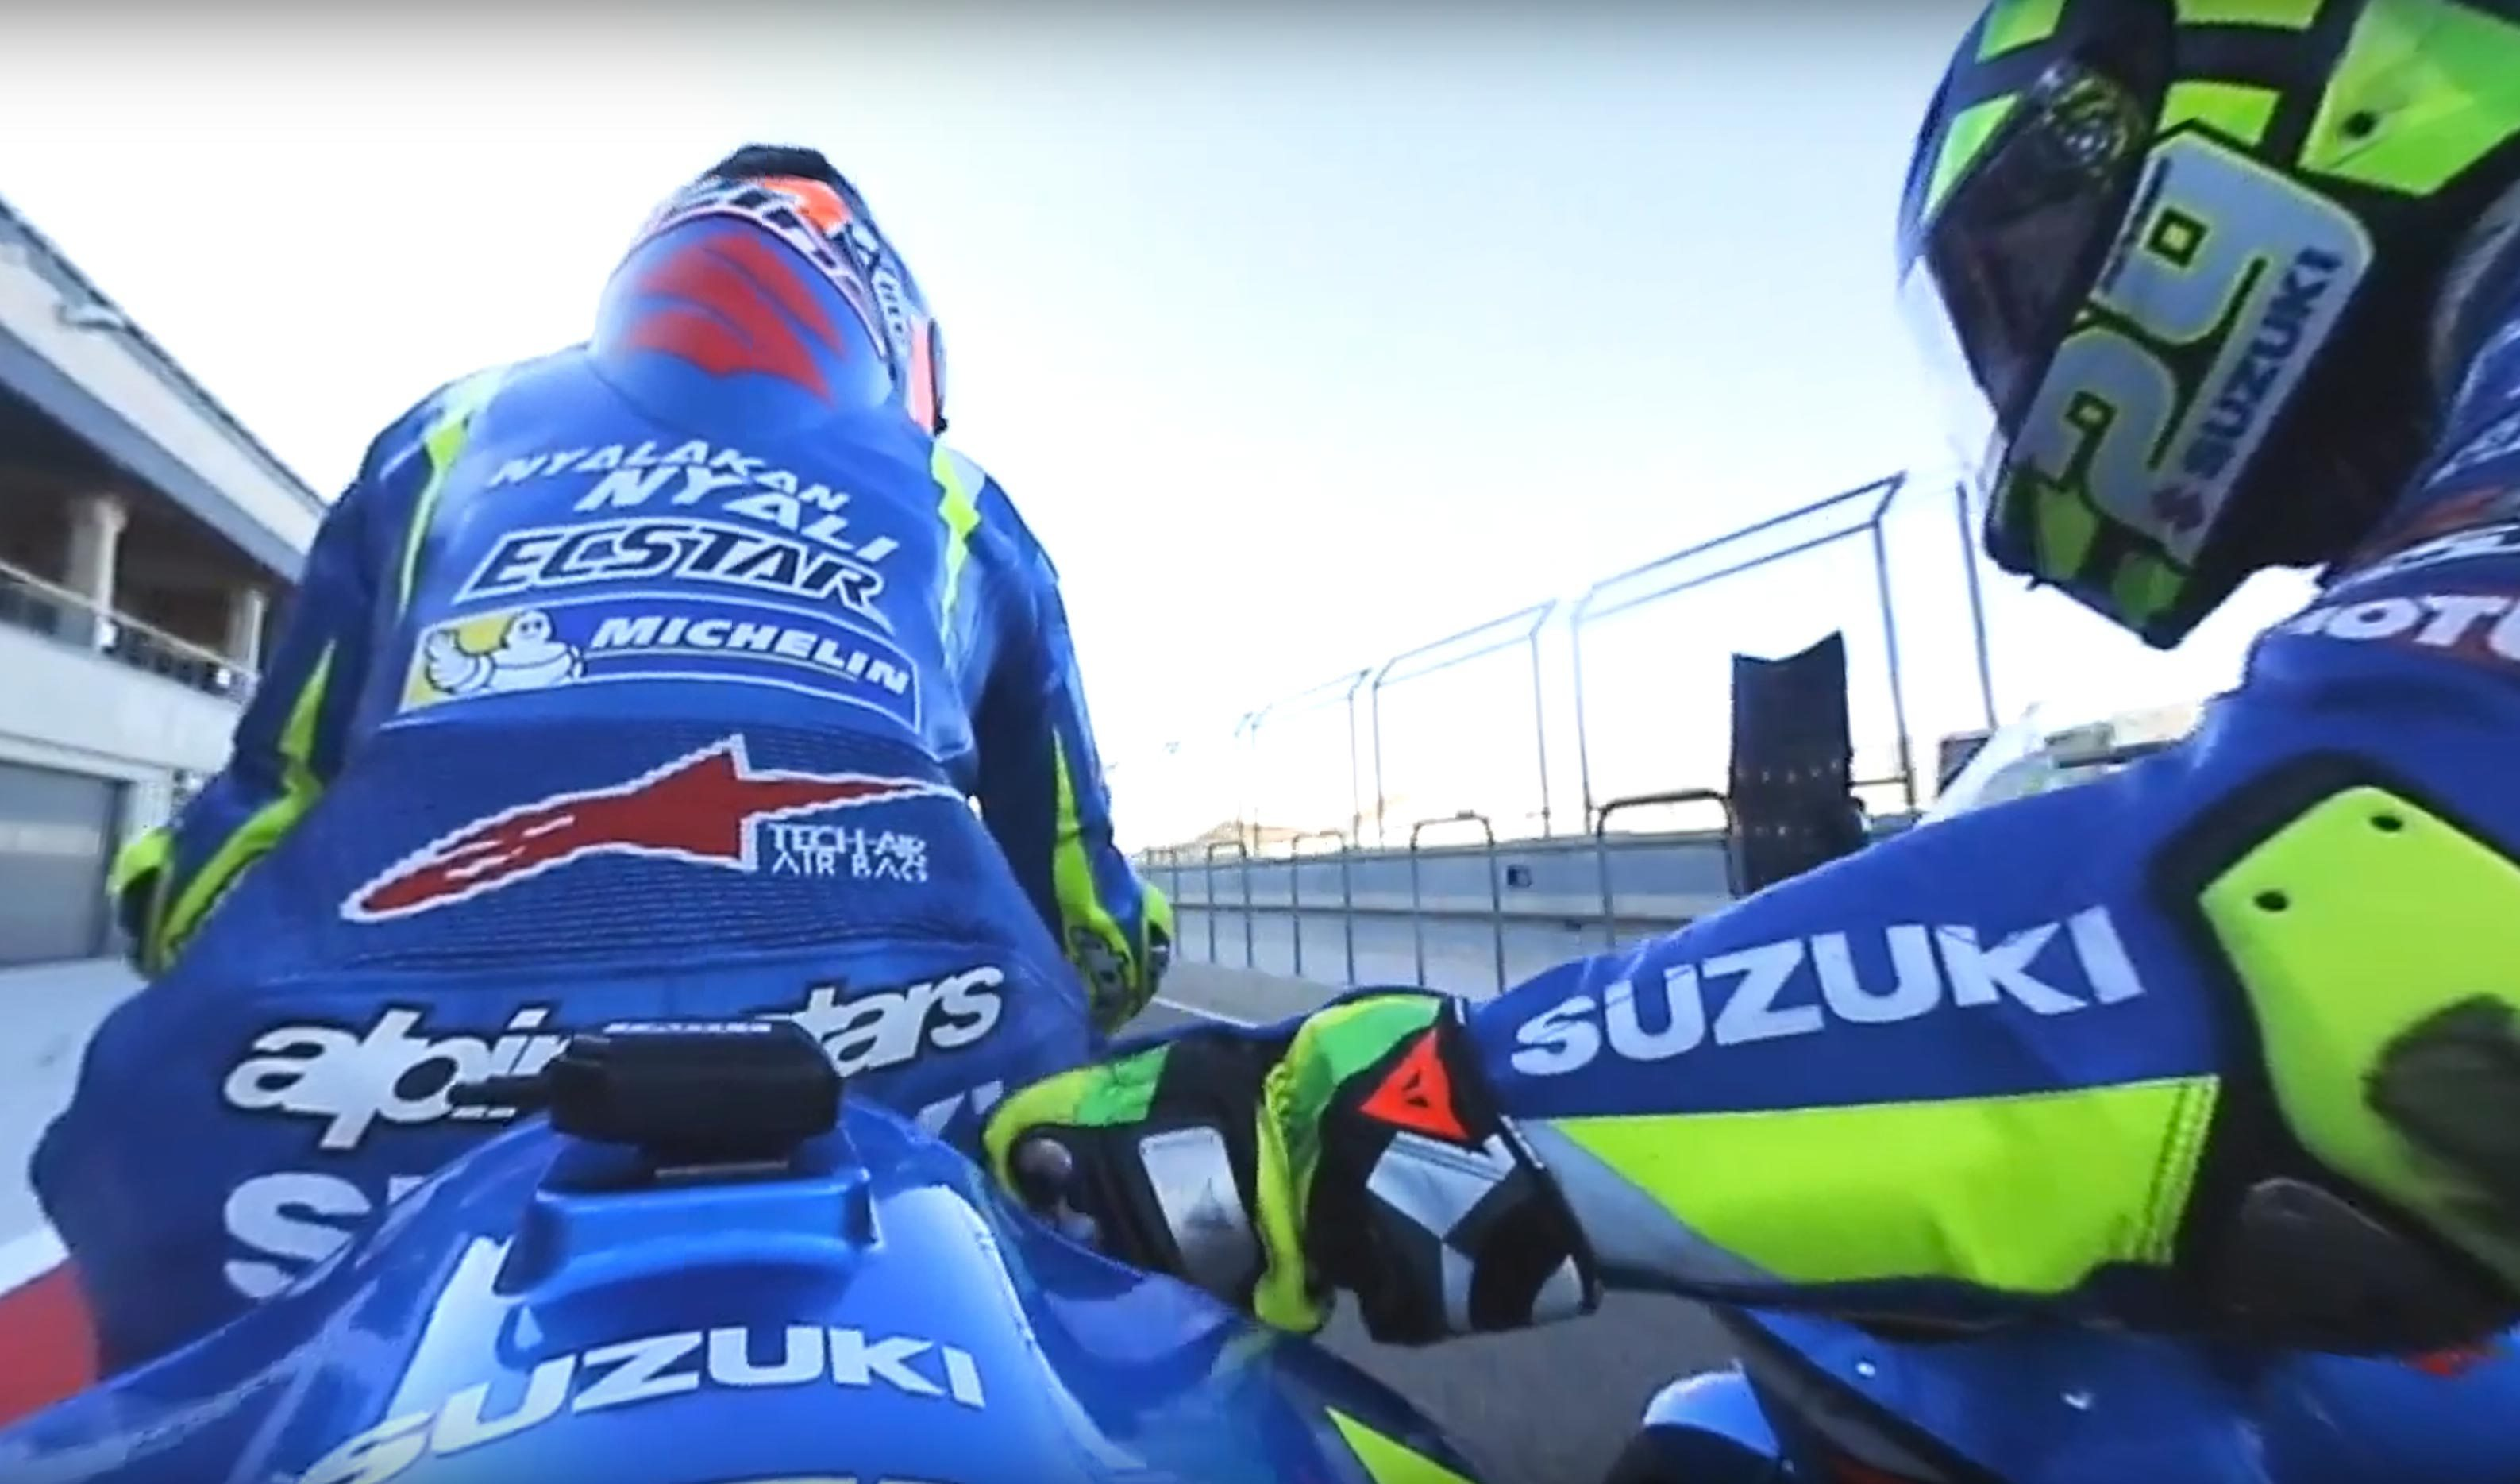 suzuki motogp vr virtual reality